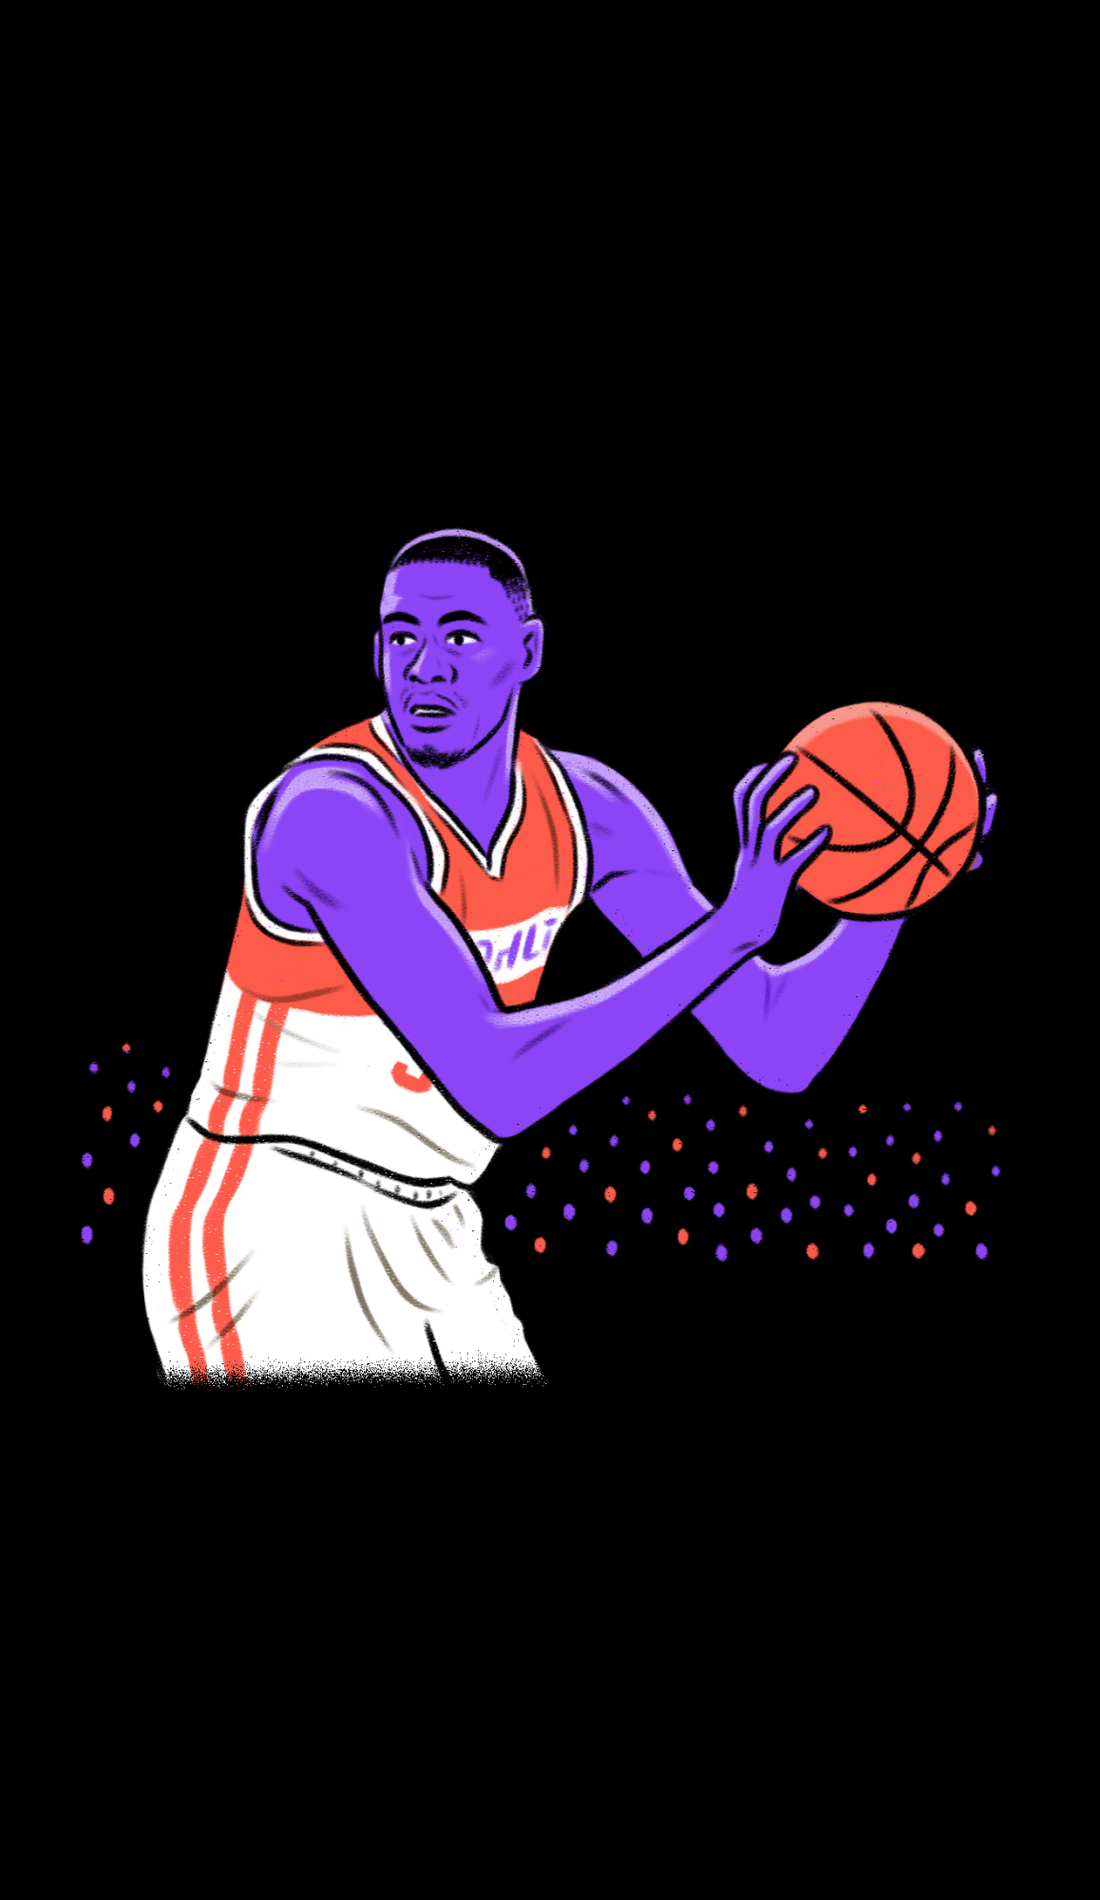 A San Diego State Aztecs Basketball live event